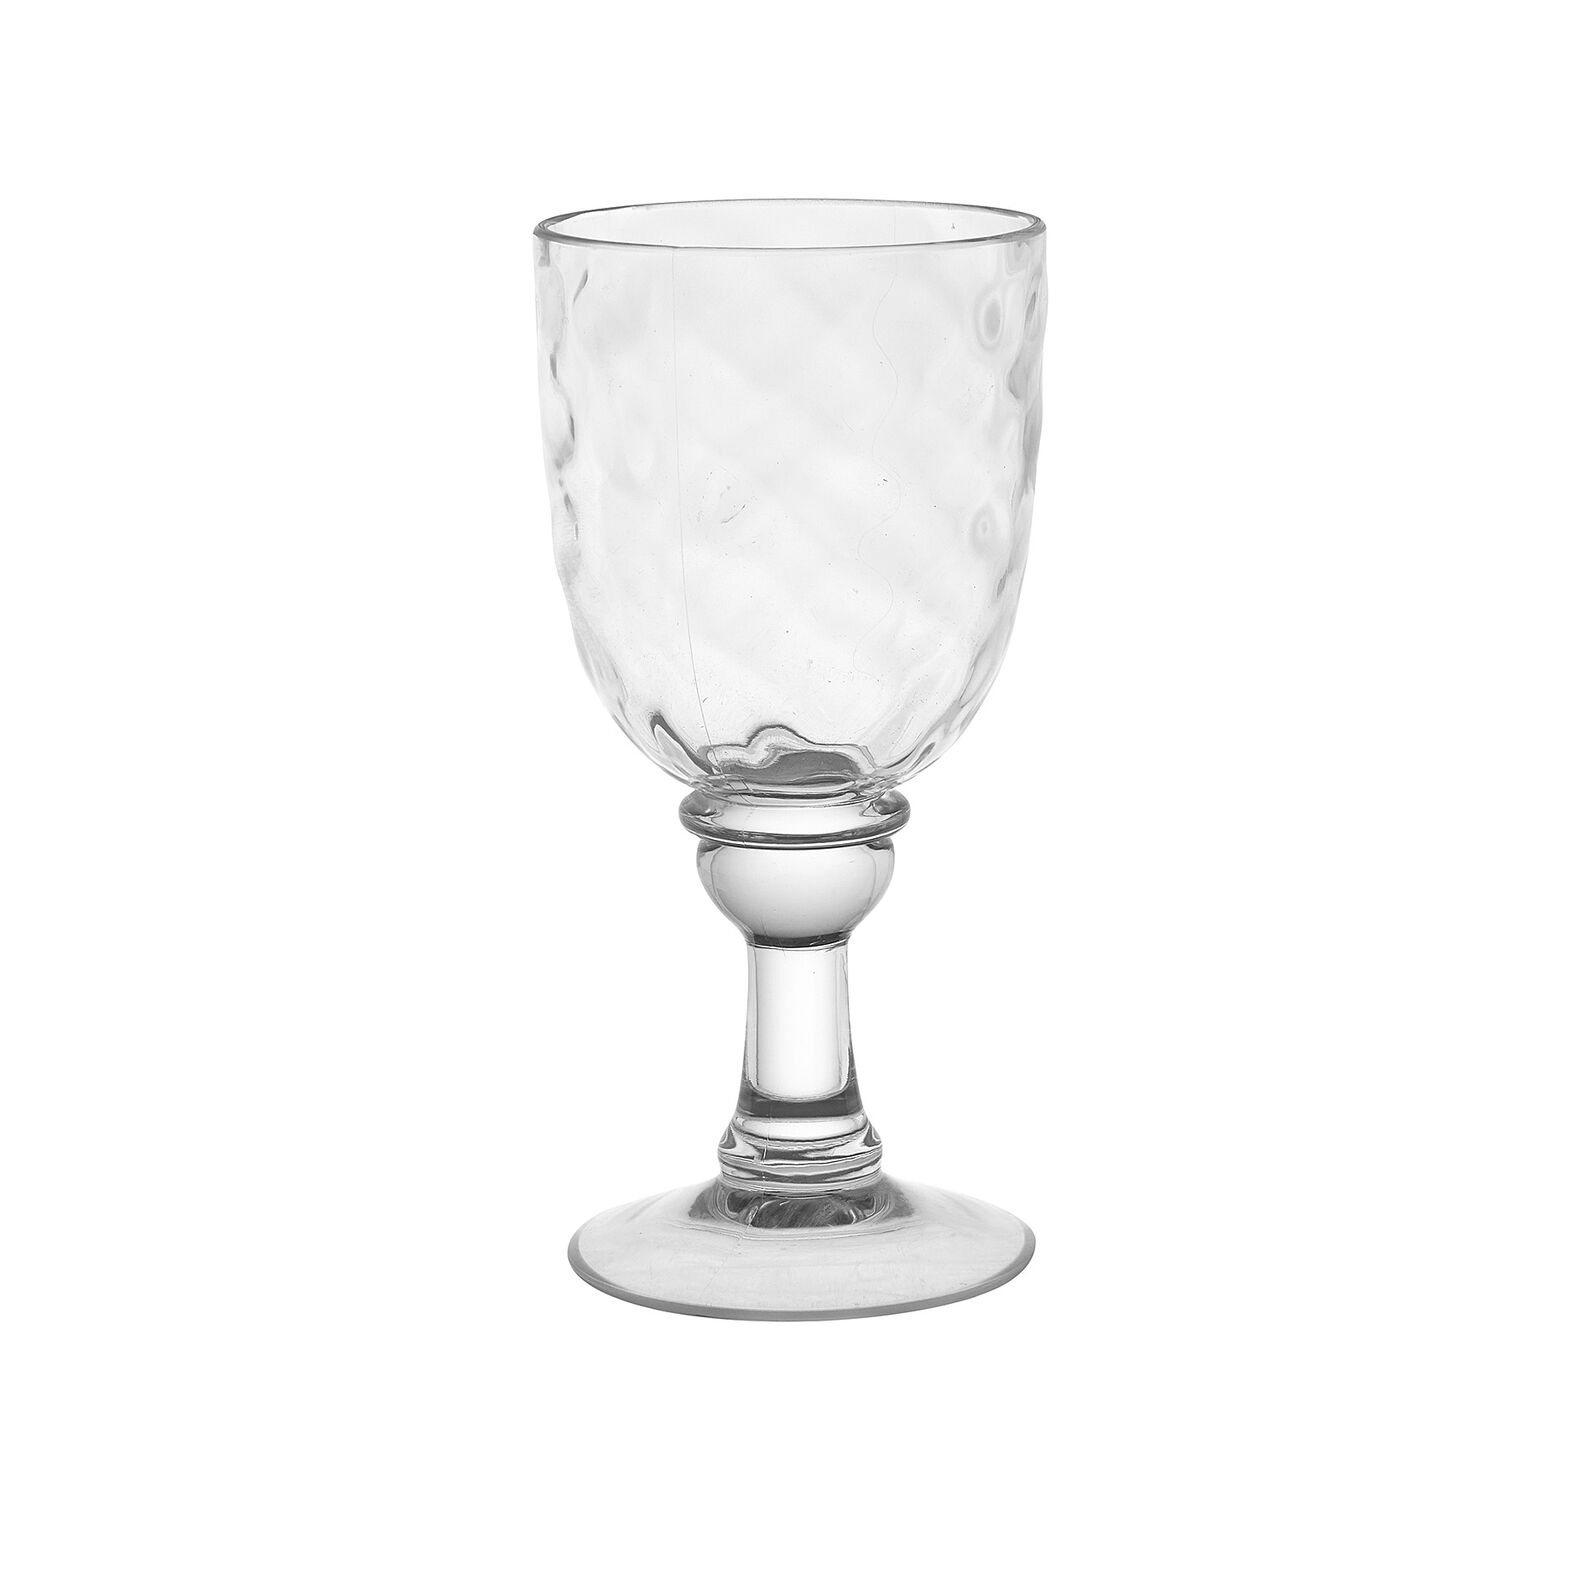 MS water goblet